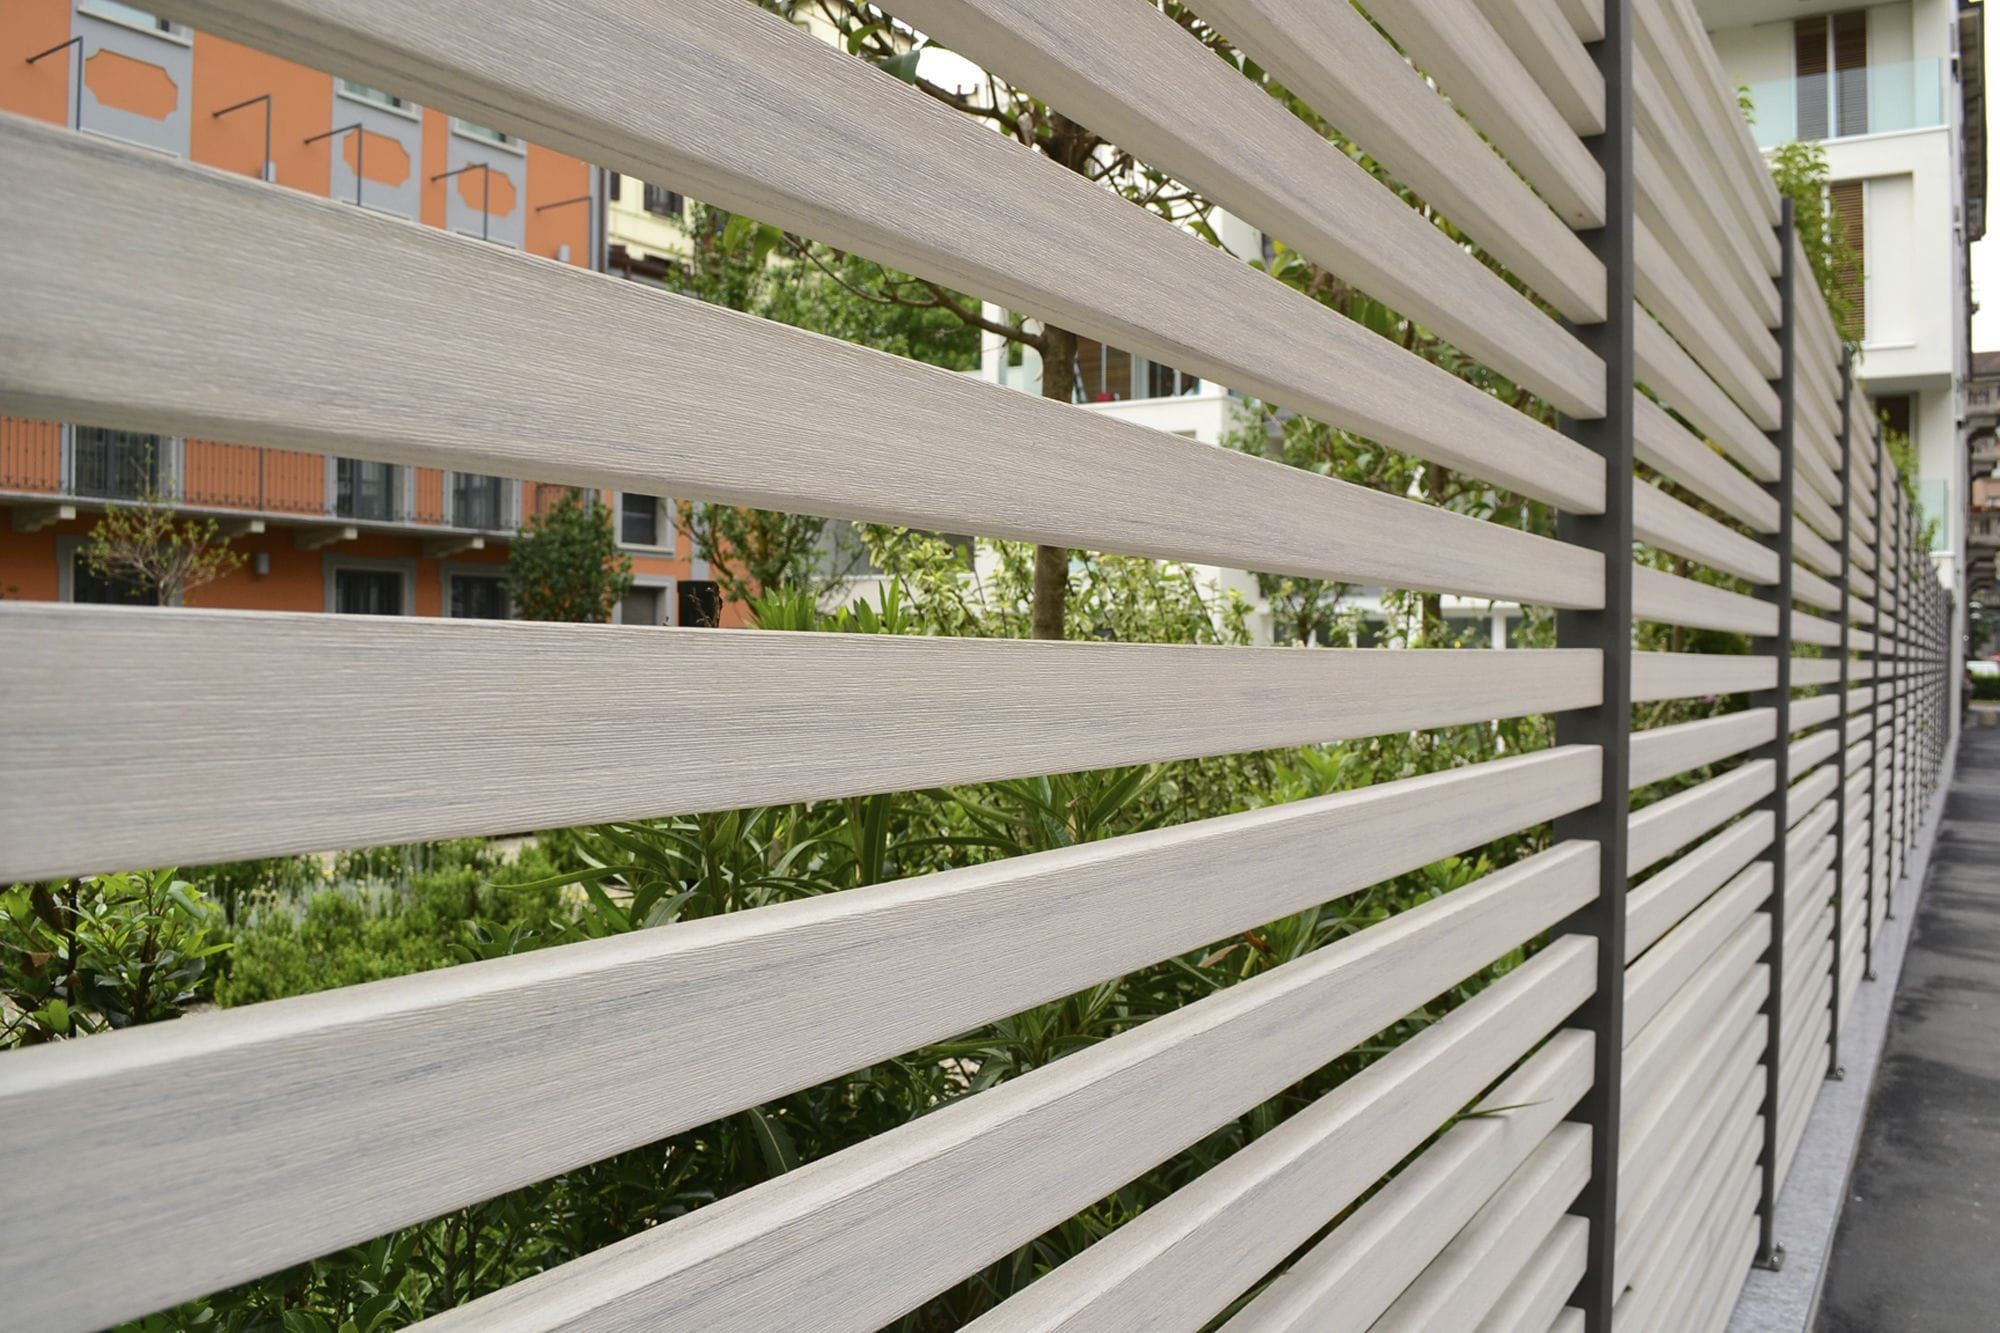 Garden fence / louvered / woodplastic composite / brushed